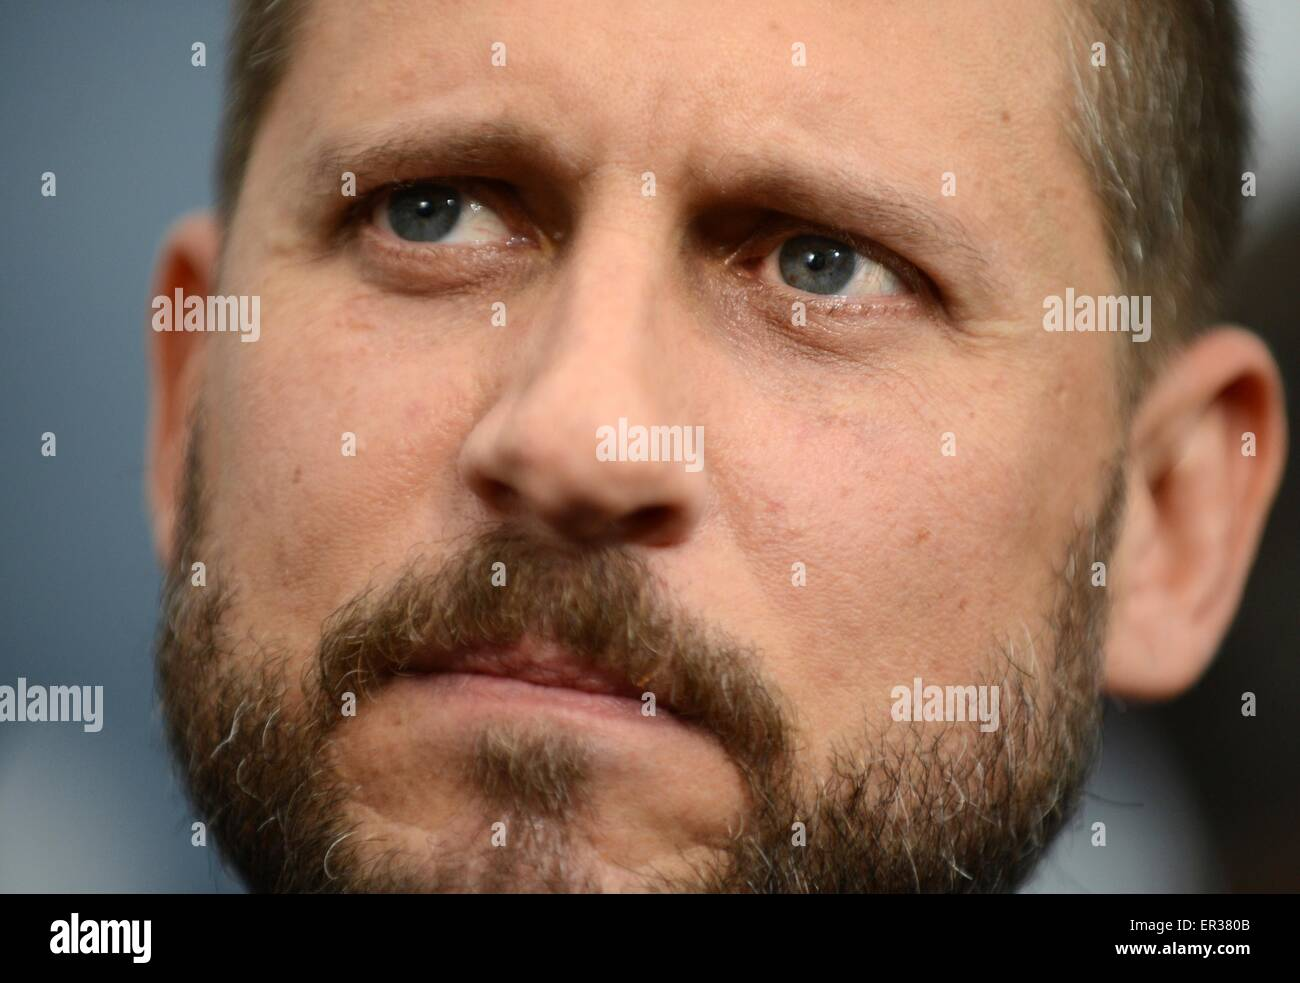 Director David Ayer at the premier of the blockbuster movie Fury at the Newseum October 21, 2014 in Washington D.C. - Stock Image